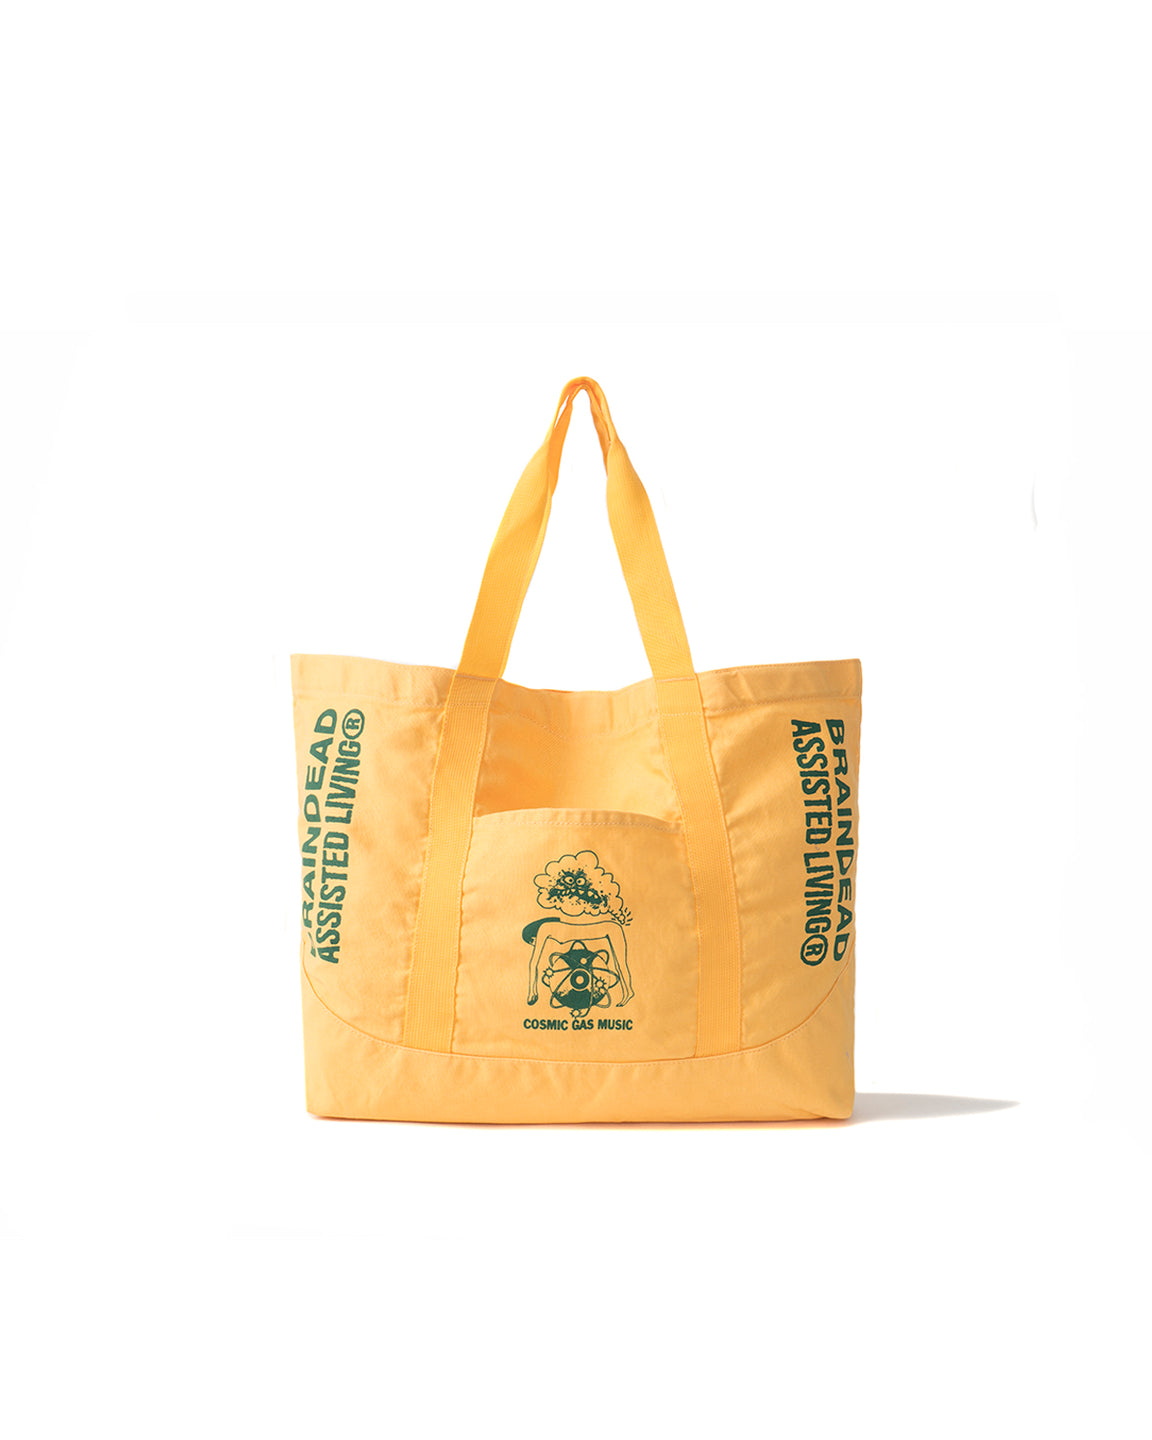 Cosmic Gas Music Tote - Yellow